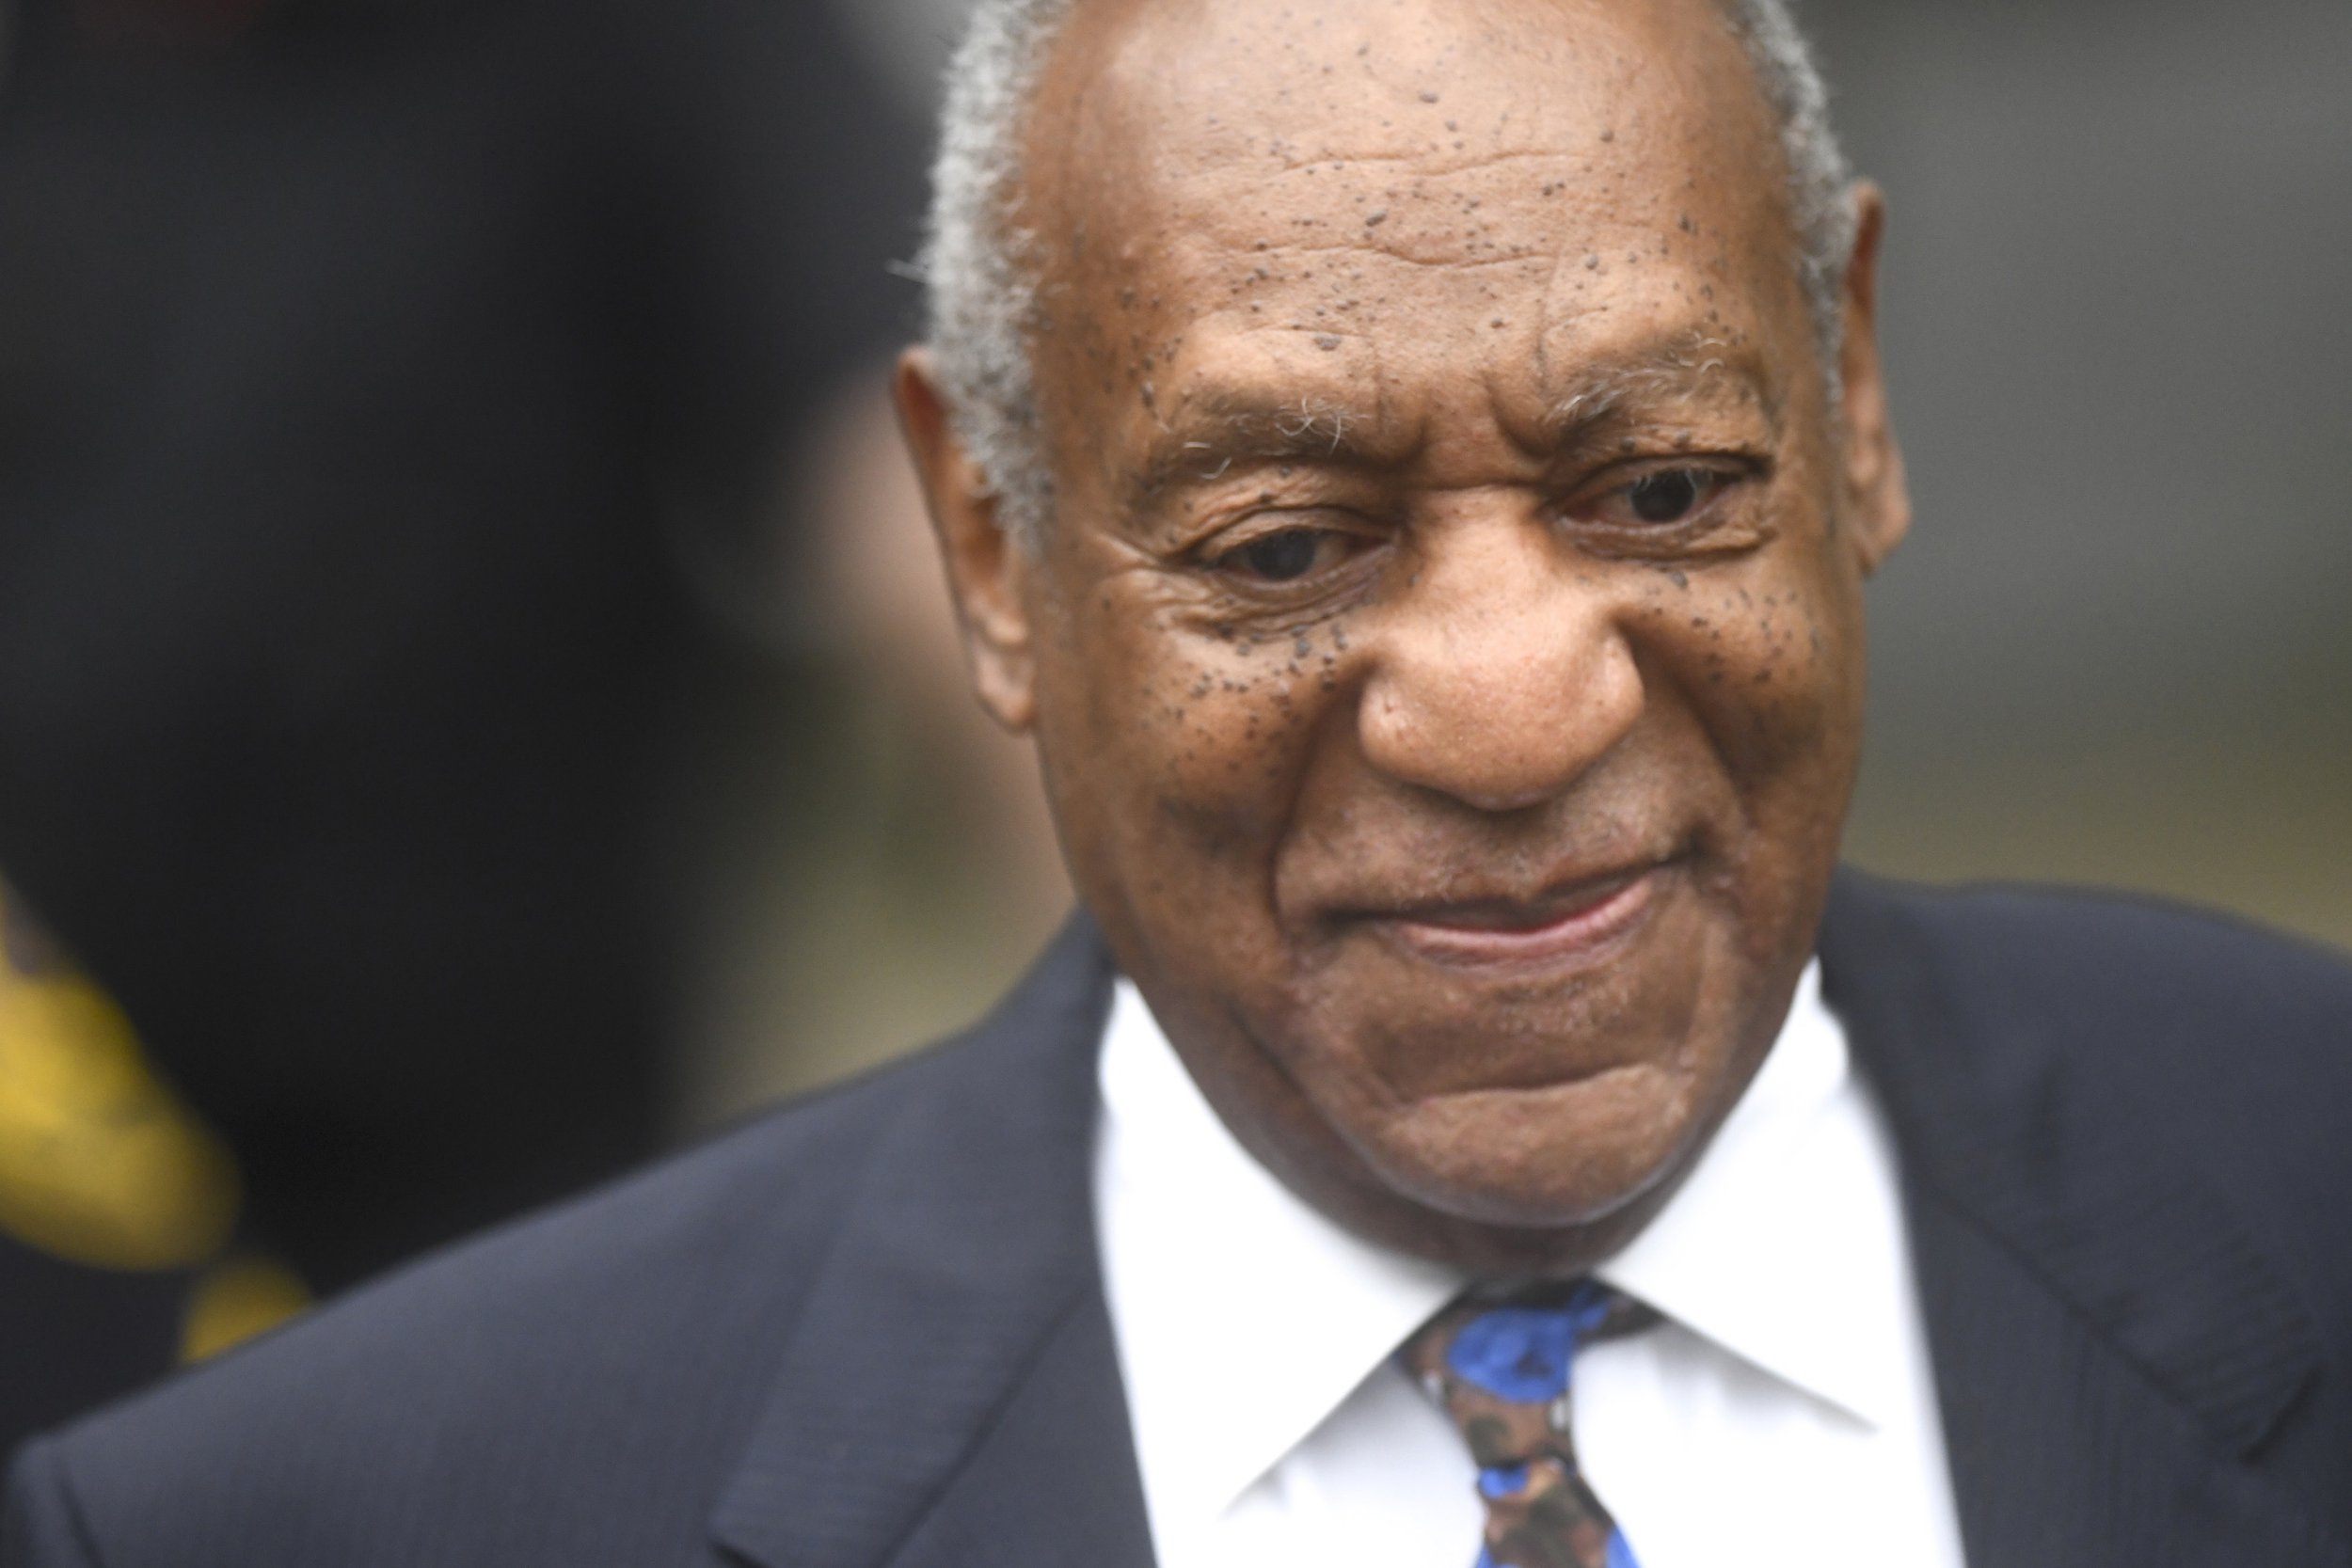 NORRISTOWN, PA - SEPTEMBER 24: Bill Cosby arrives at the Montgomery County Courthouse on the first day of sentencing in his sexual assault trial on September 24, 2018 in Norristown, Pennsylvania. In April, Cosby was found guilty on three counts of aggravated indecent assault for drugging and sexually assaulting Andrea Constand at his suburban Philadelphia home in 2004. 60 women have accused the 80 year old entertainer of sexual assault. (Photo by Mark Makela/Getty Images)